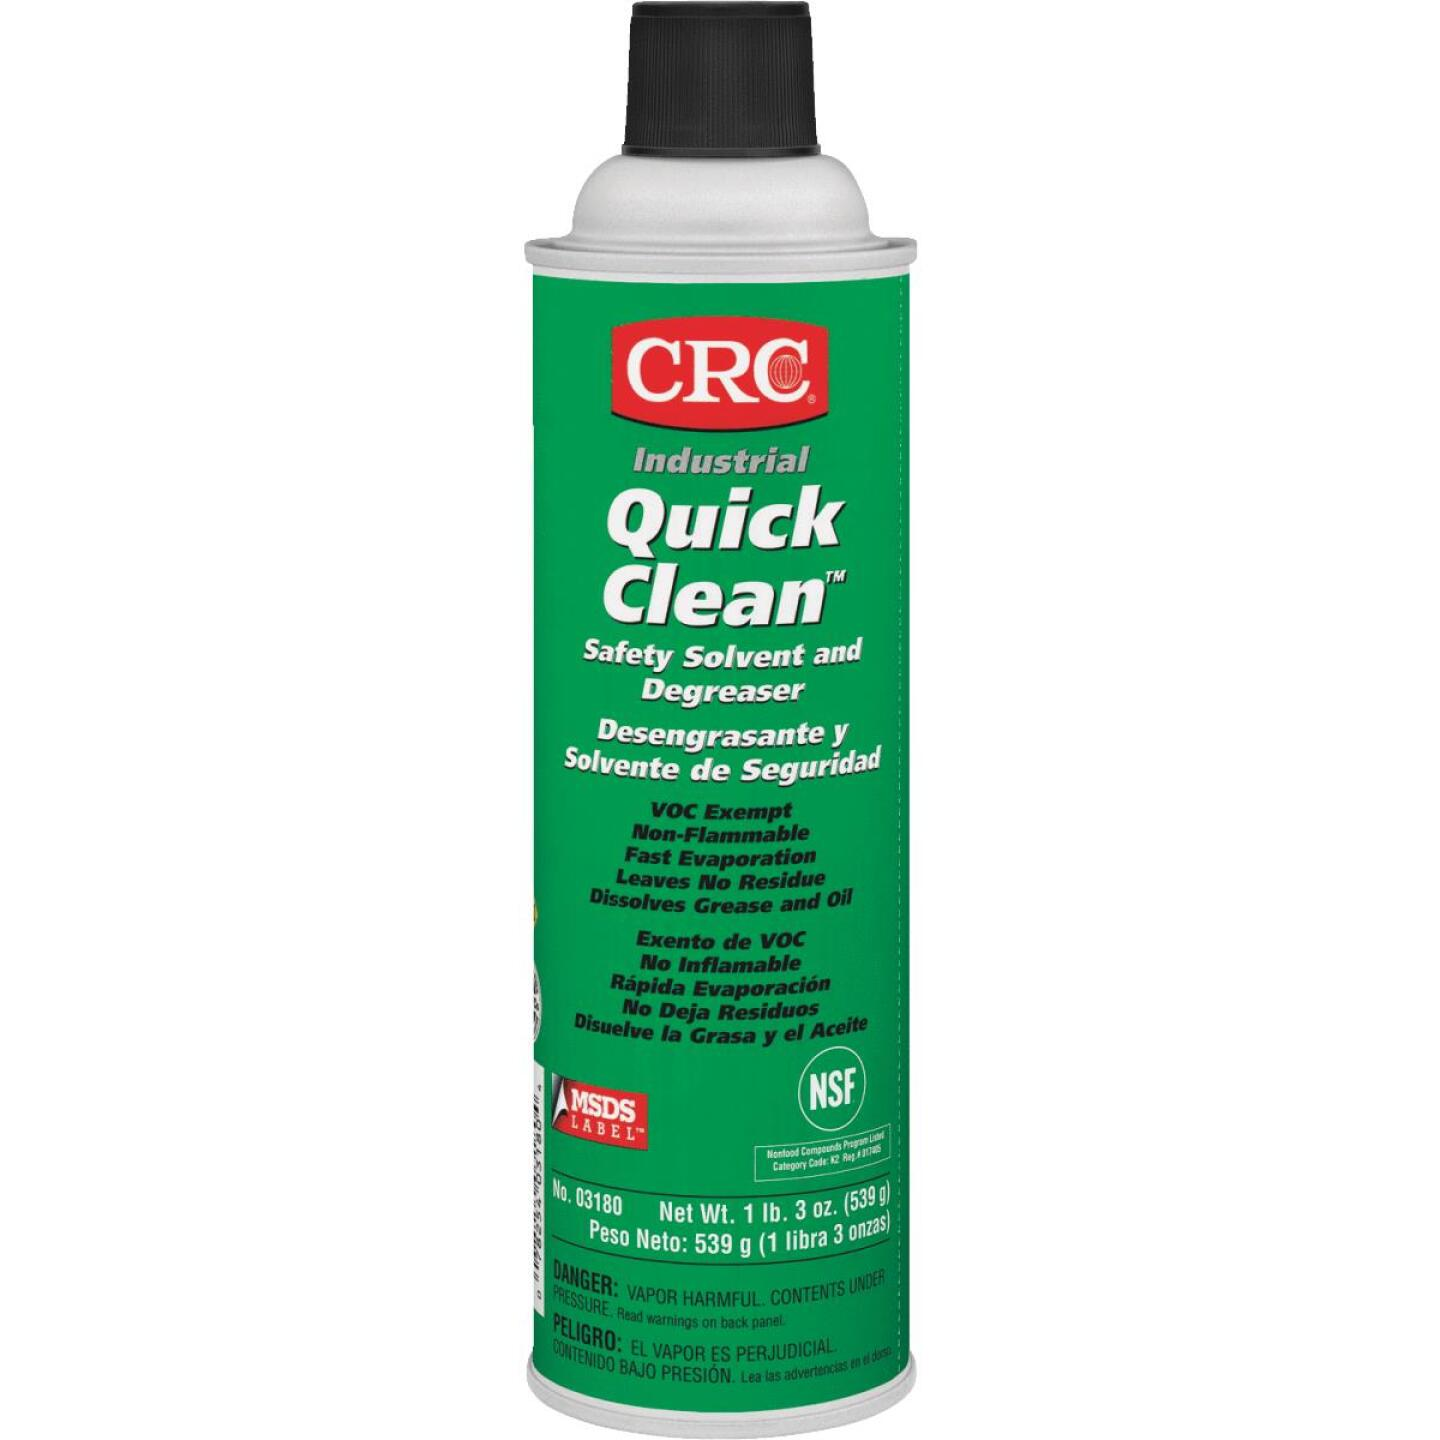 CRC Quick Clean 19 Oz. Aerosol Degreaser Image 1